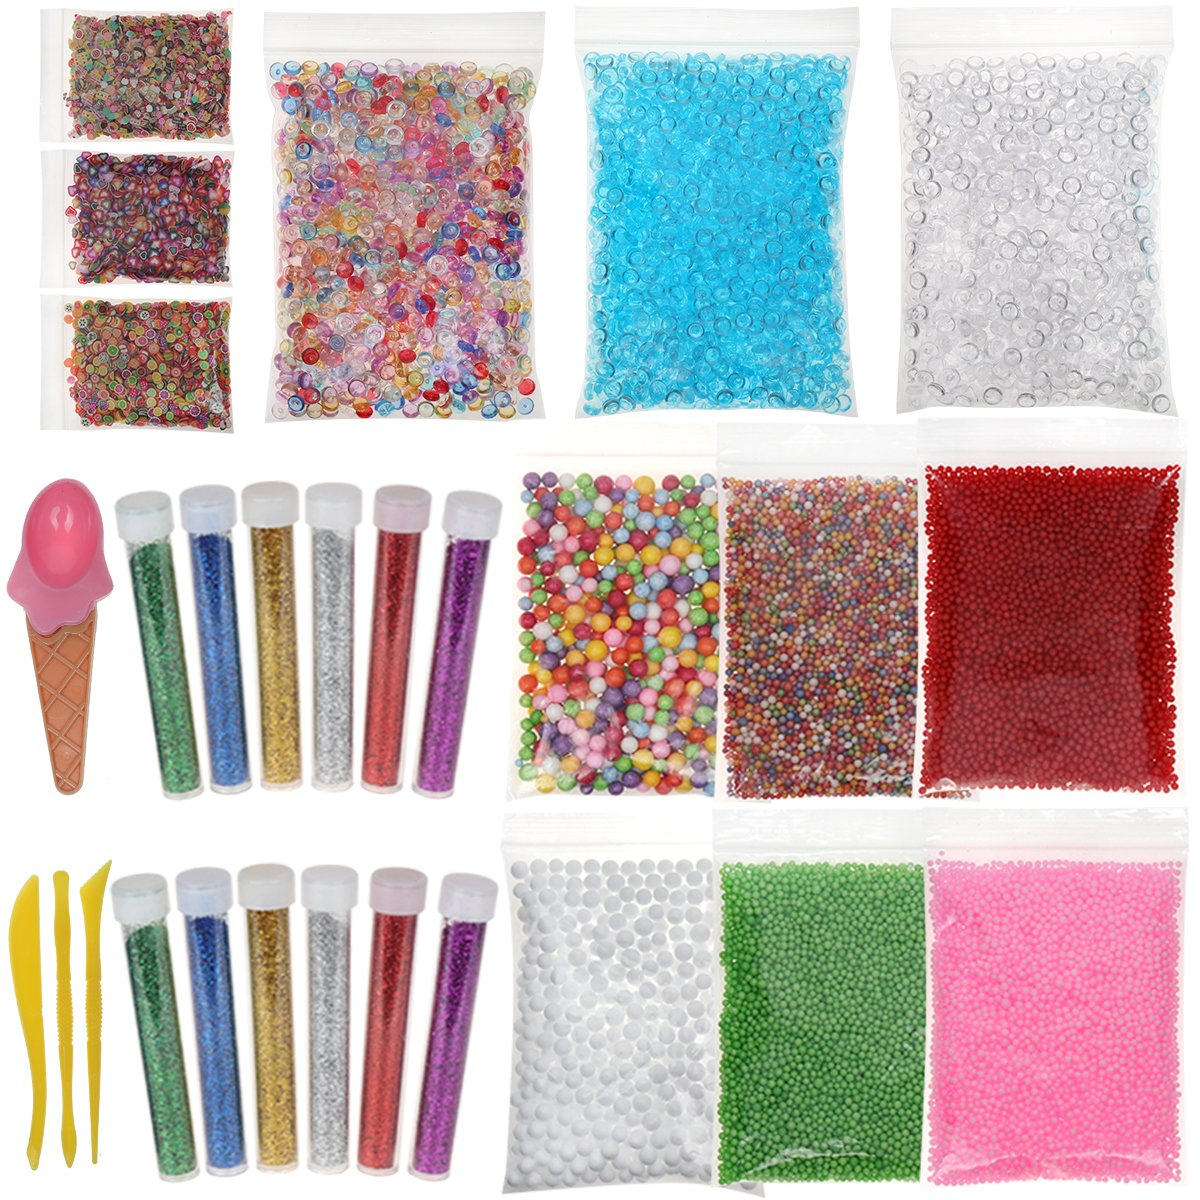 28 Packs Slime Making Supplies for Slime Staff DIY, Foam Beads Fishbowl Glitter and Fruit Slices for Slime by Hulluter